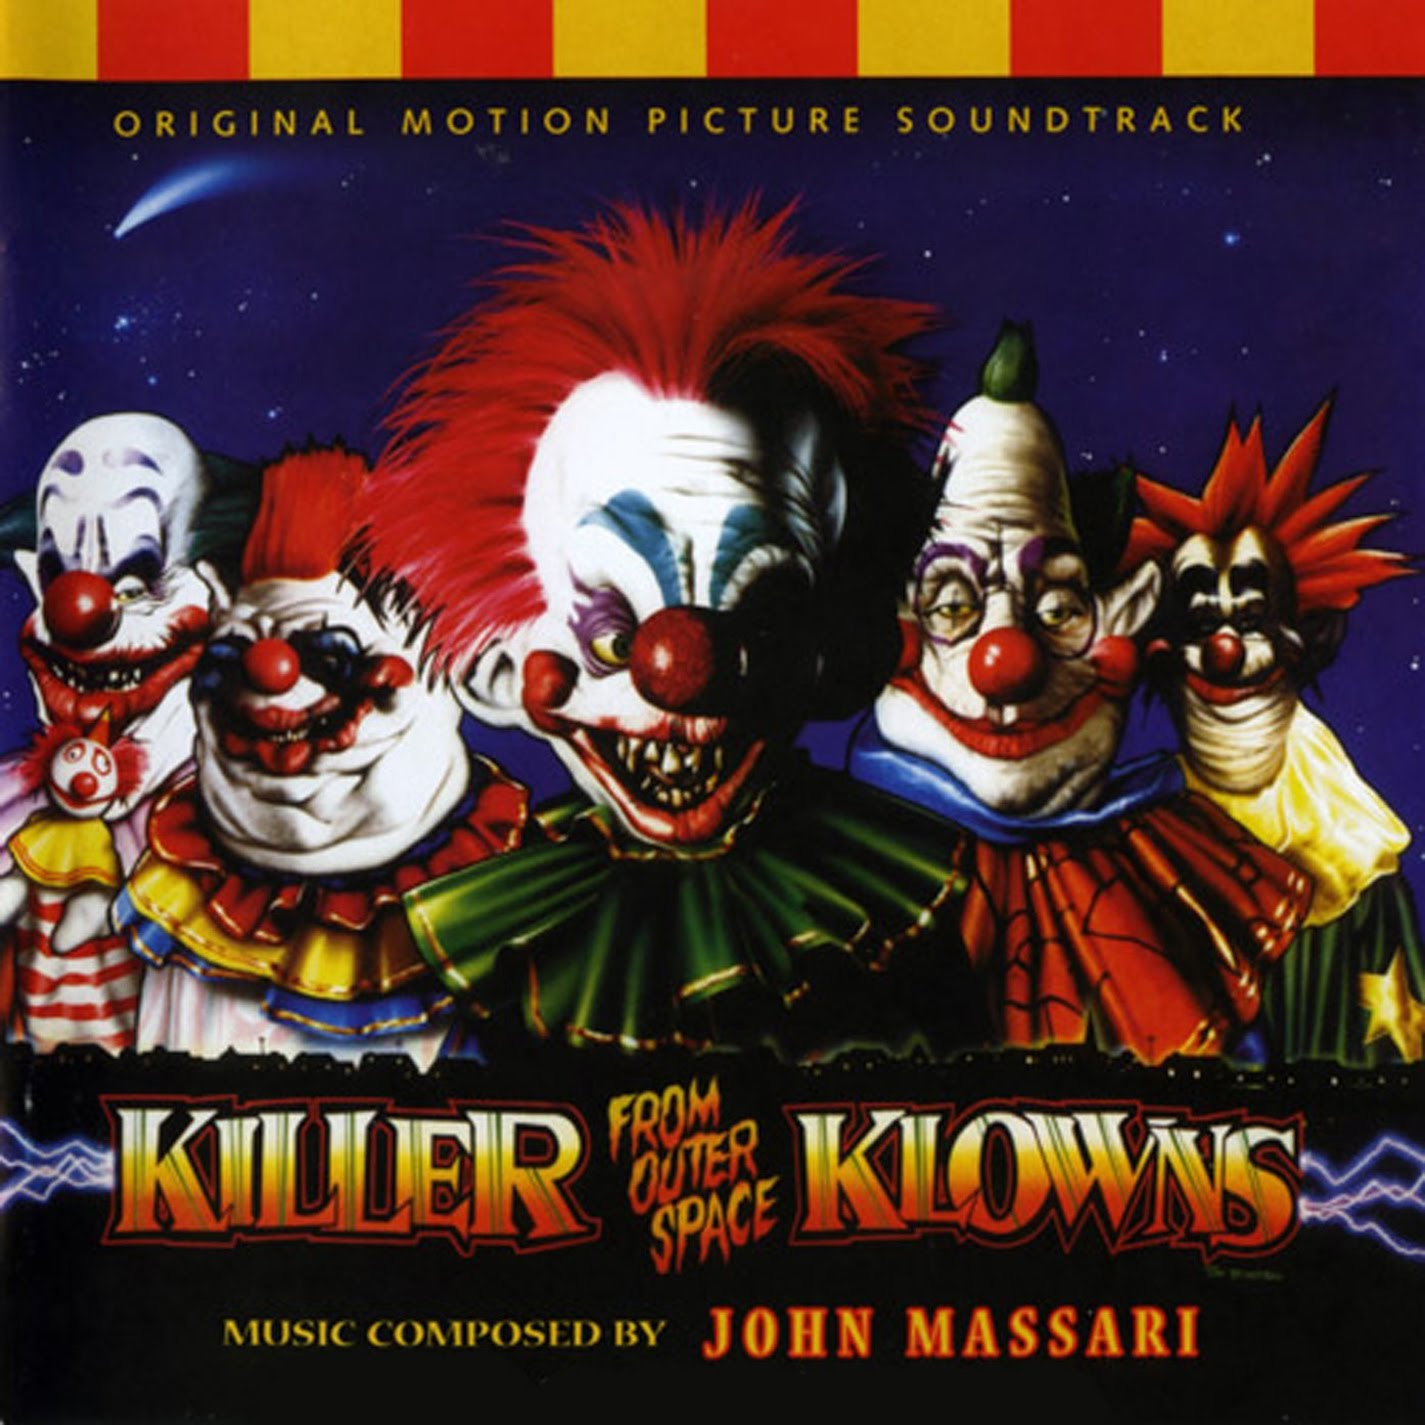 Grave situations films for Killer klowns 2